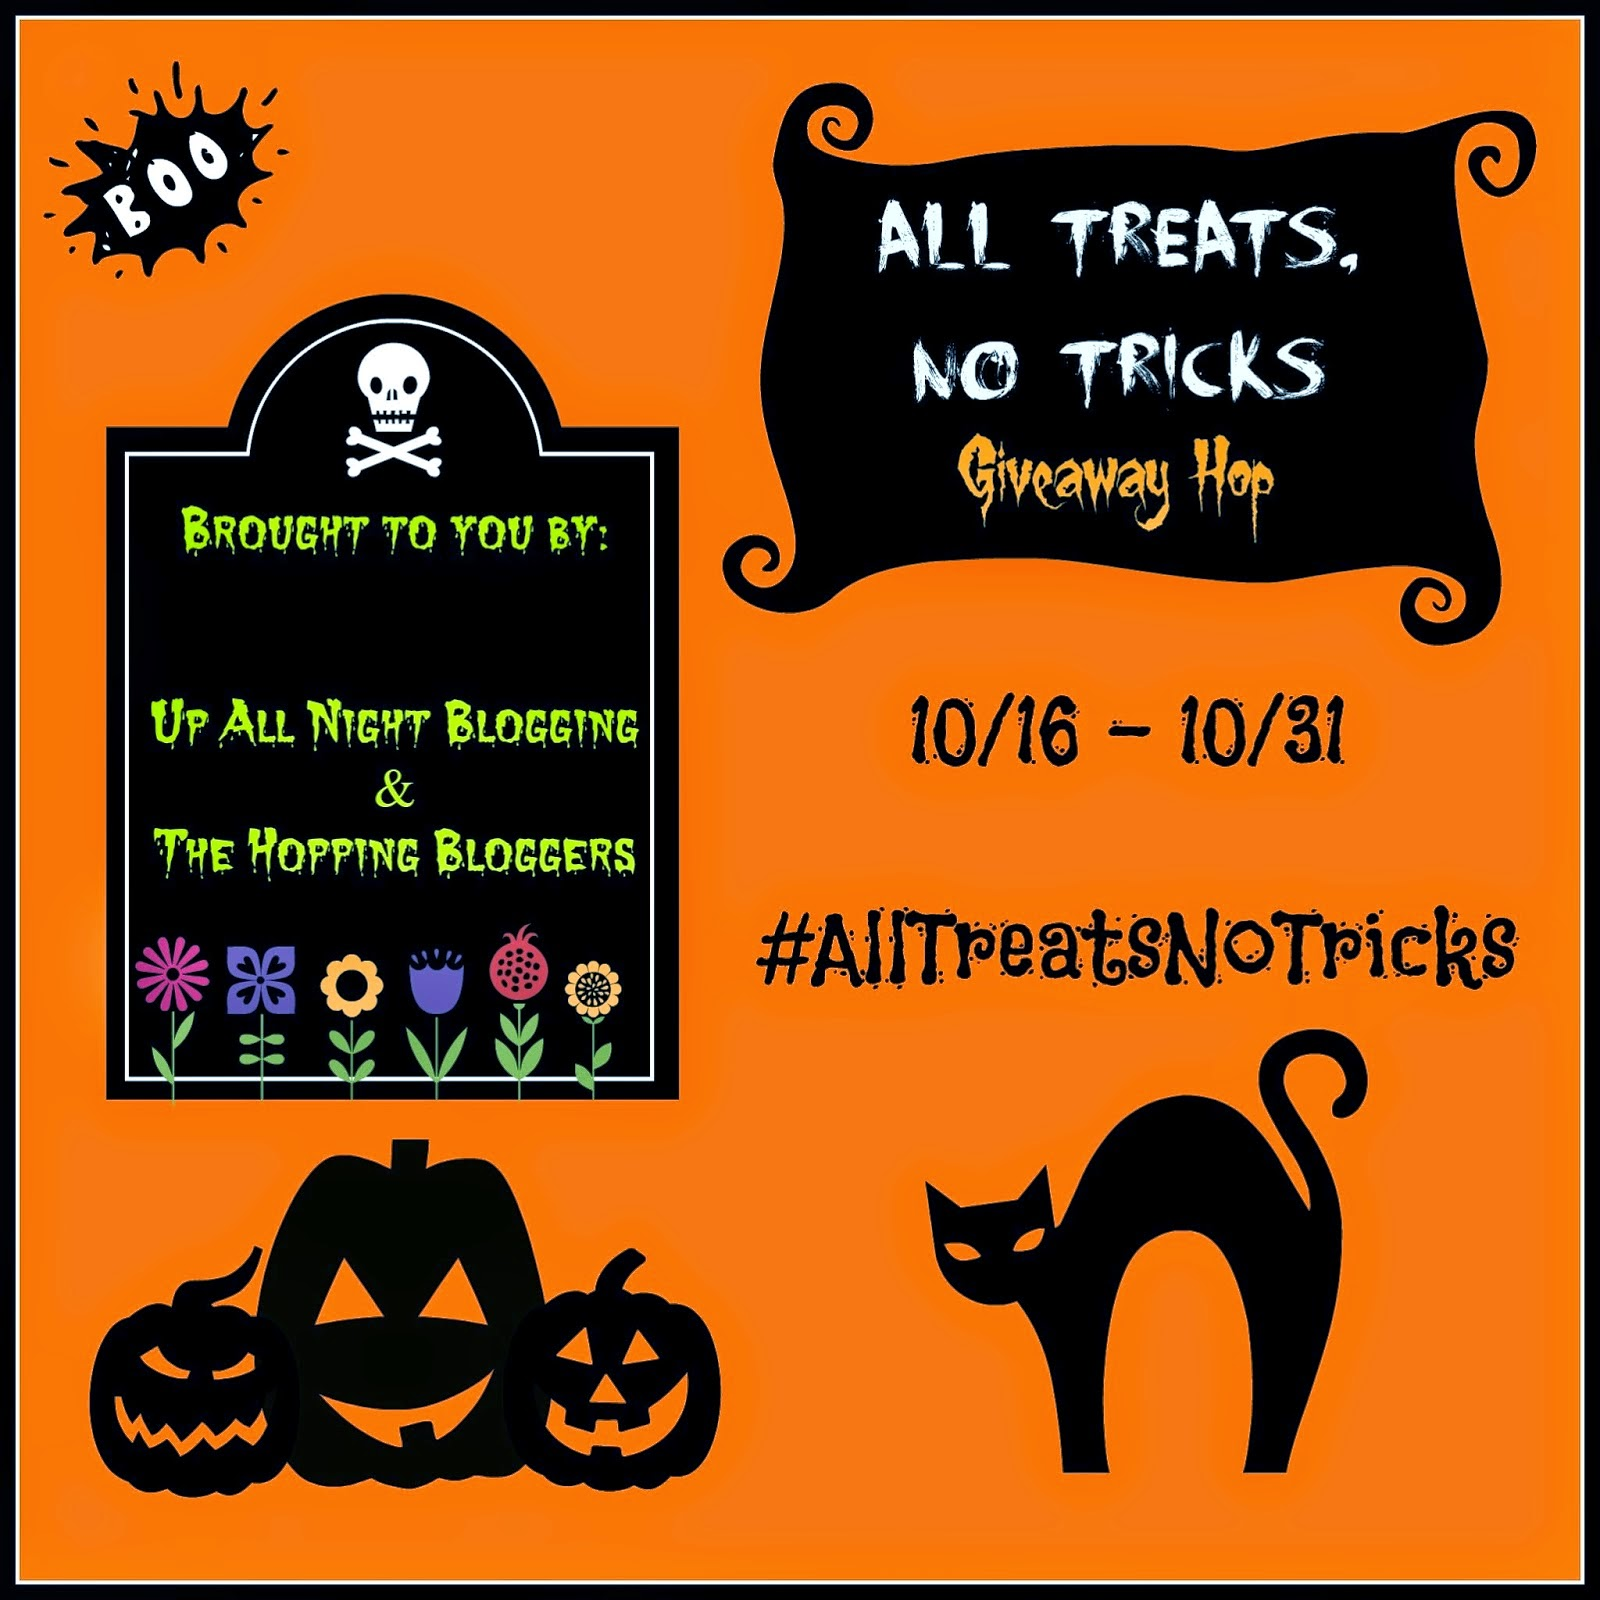 October's Giveaway: All Treats, No Tricks Giveaway Hop